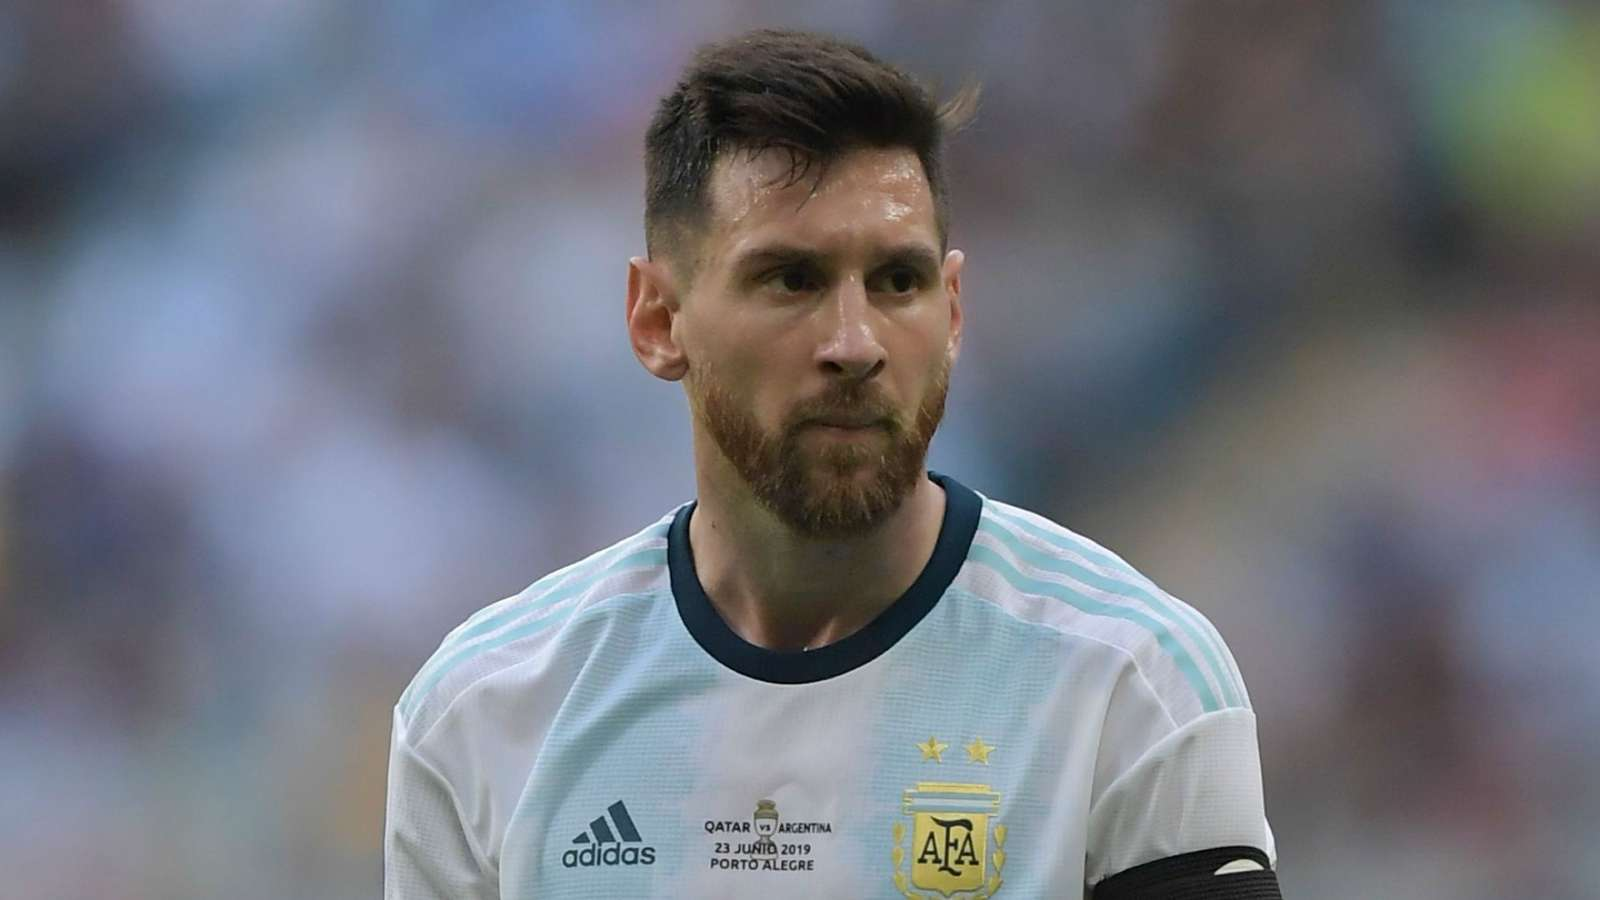 Messi choi that vong, HLV Argentina phan ung the nao?